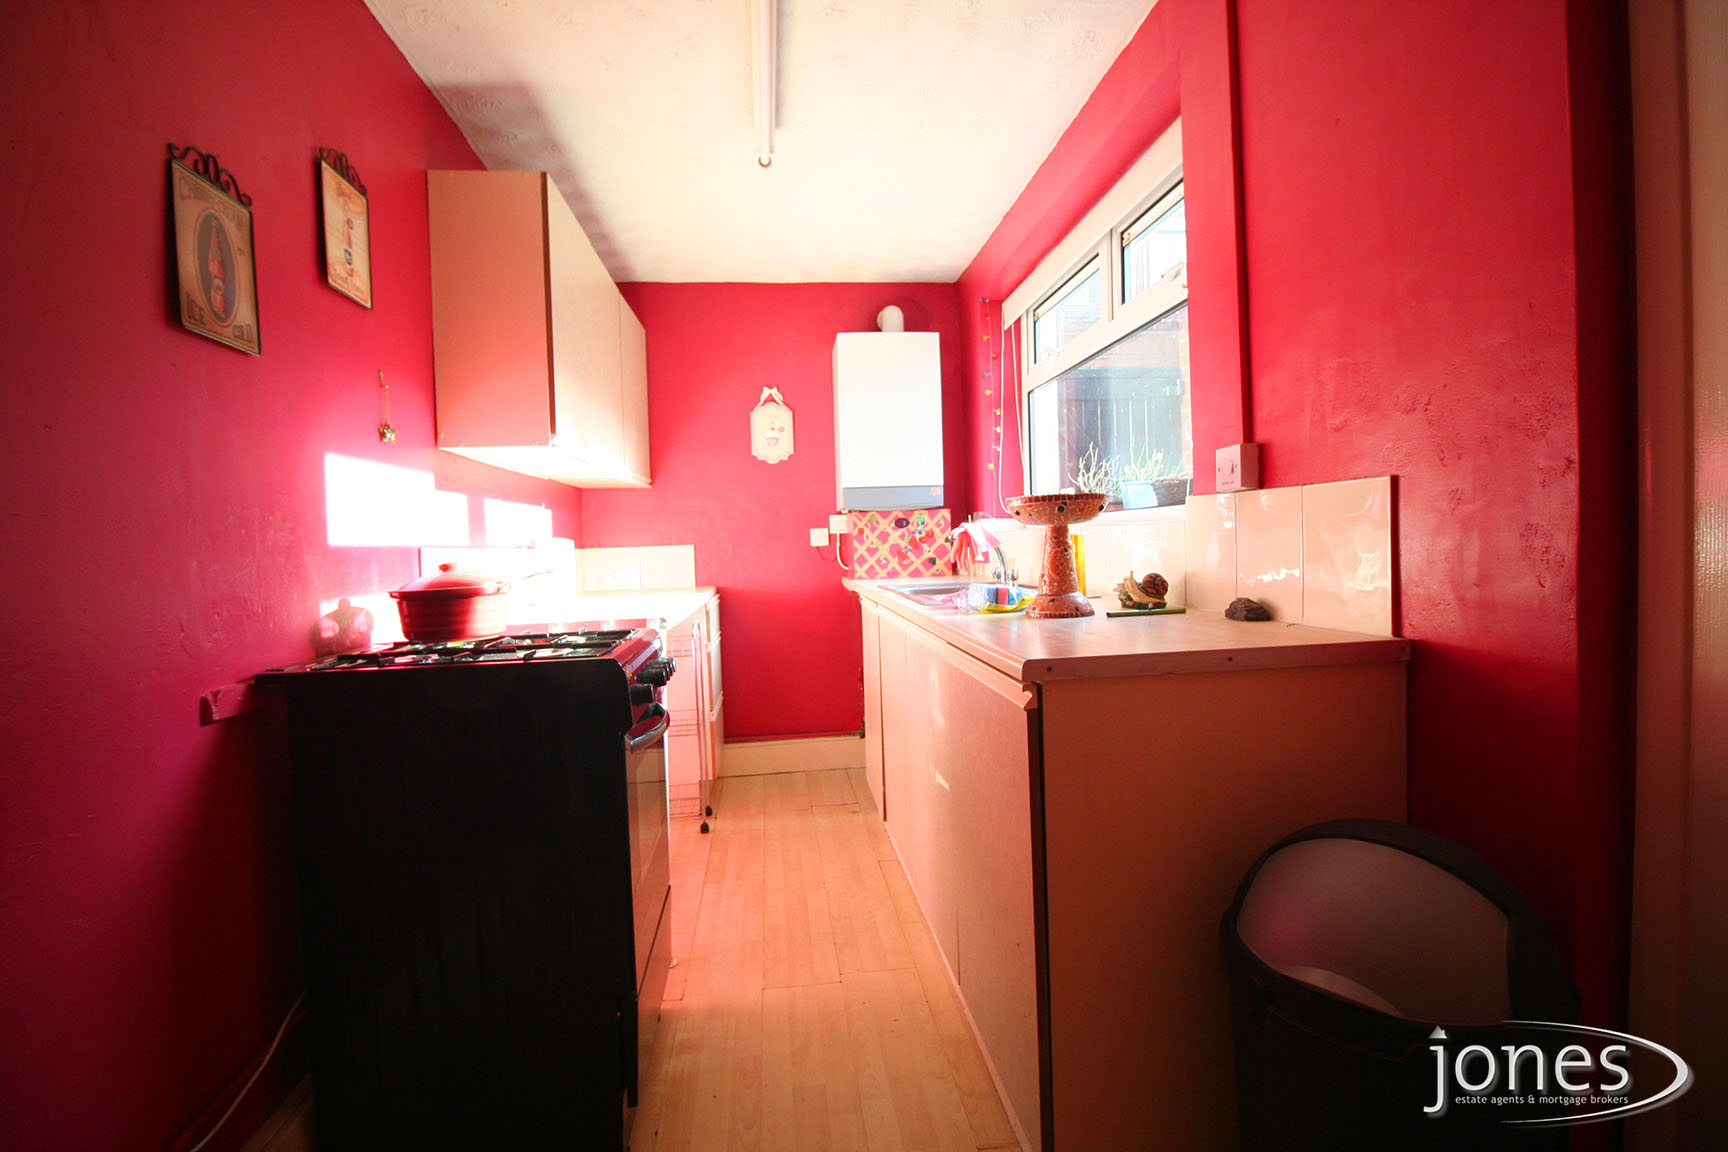 Home for Sale Let - Photo 03 Dent Street, Hartlepool, TS26 8AY